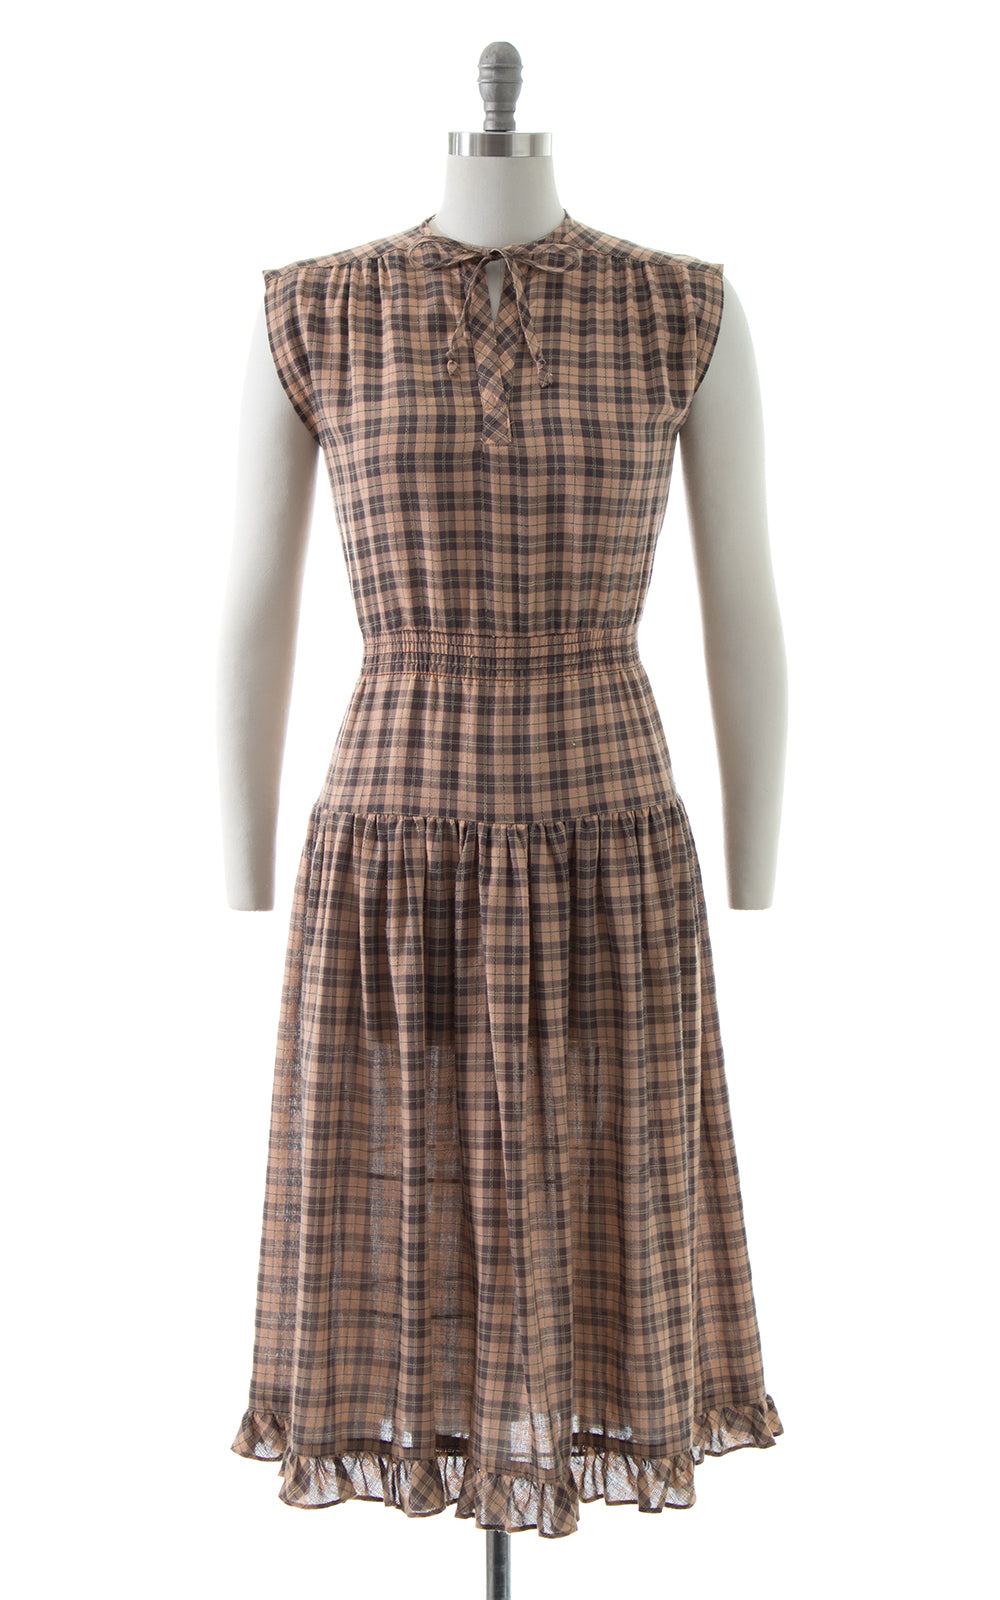 1970s Plaid Cotton Tiered Sundress